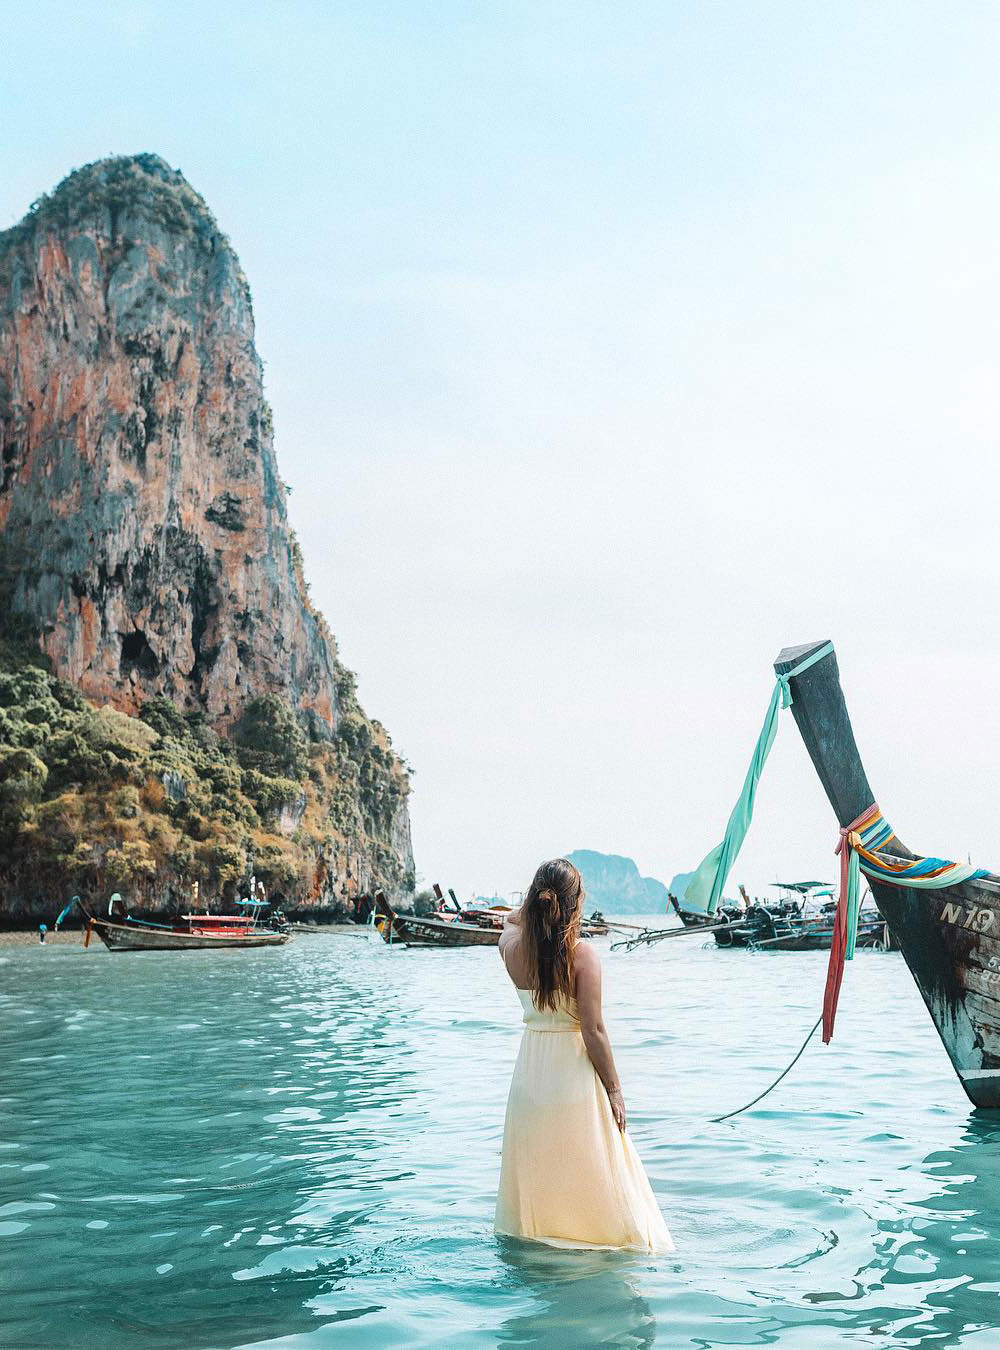 contiki tour review by To Vogue or Bust